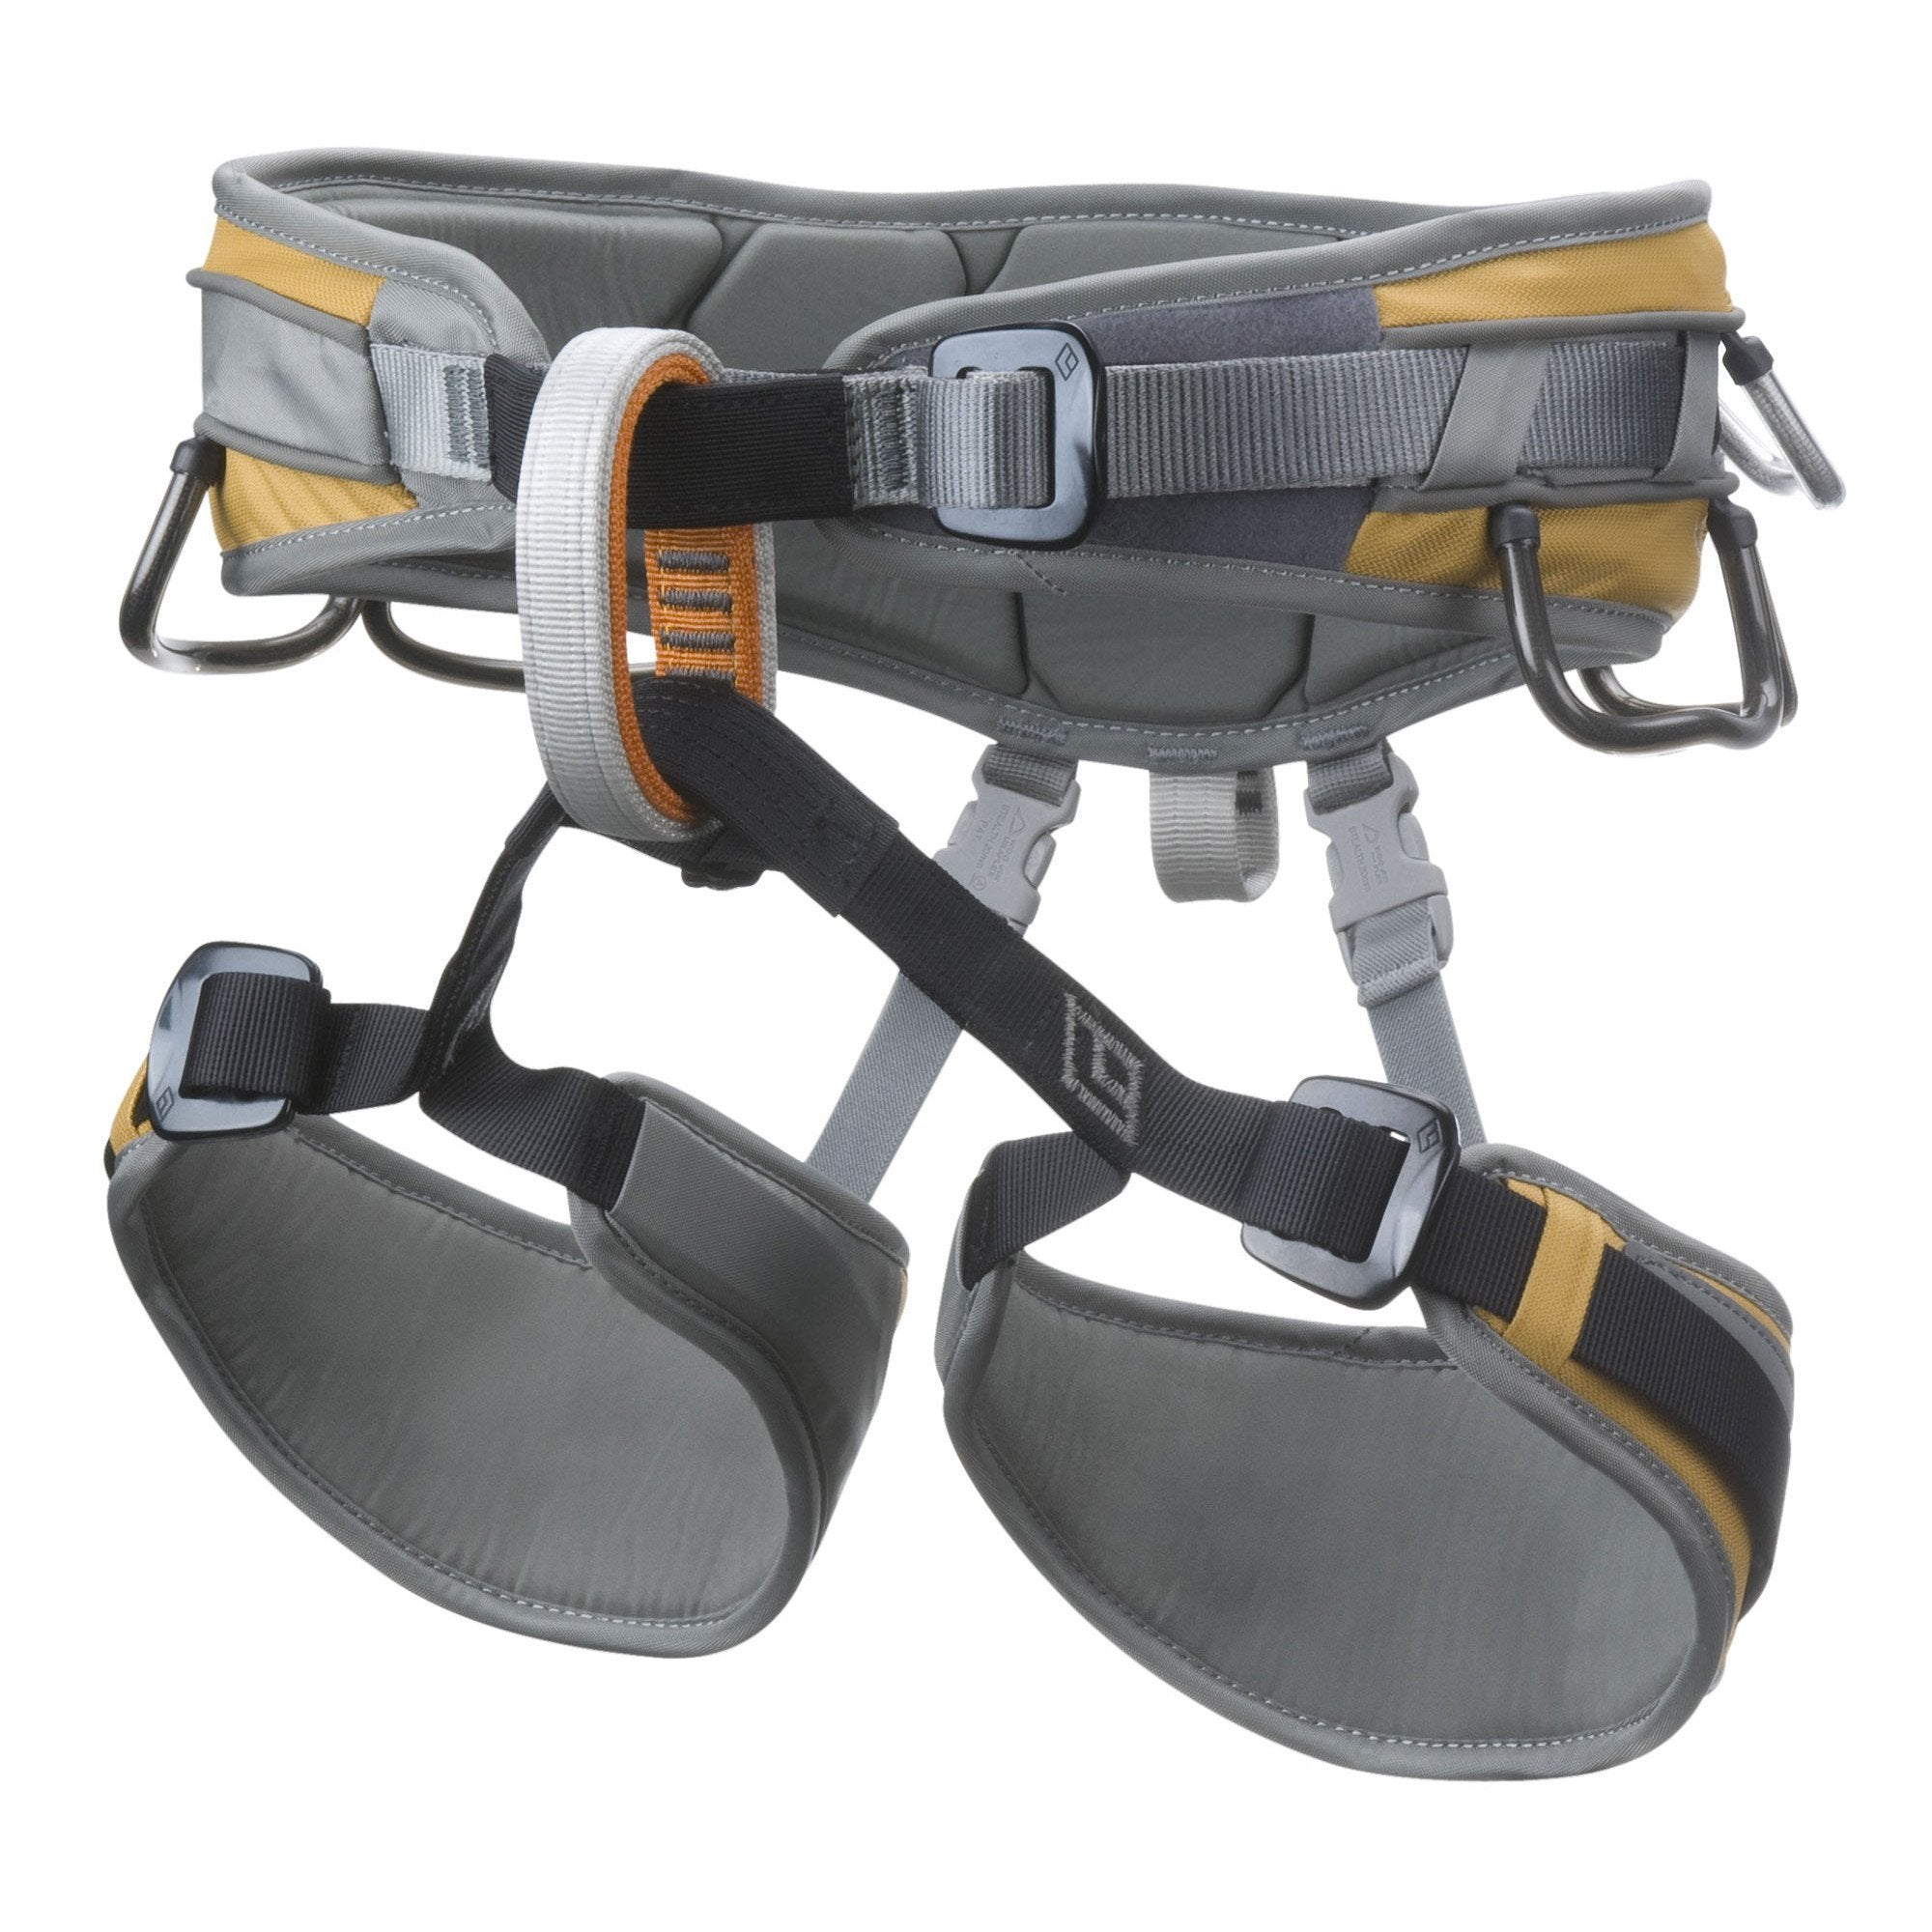 Black Diamond Big Gun Harness, in grey and gold colours